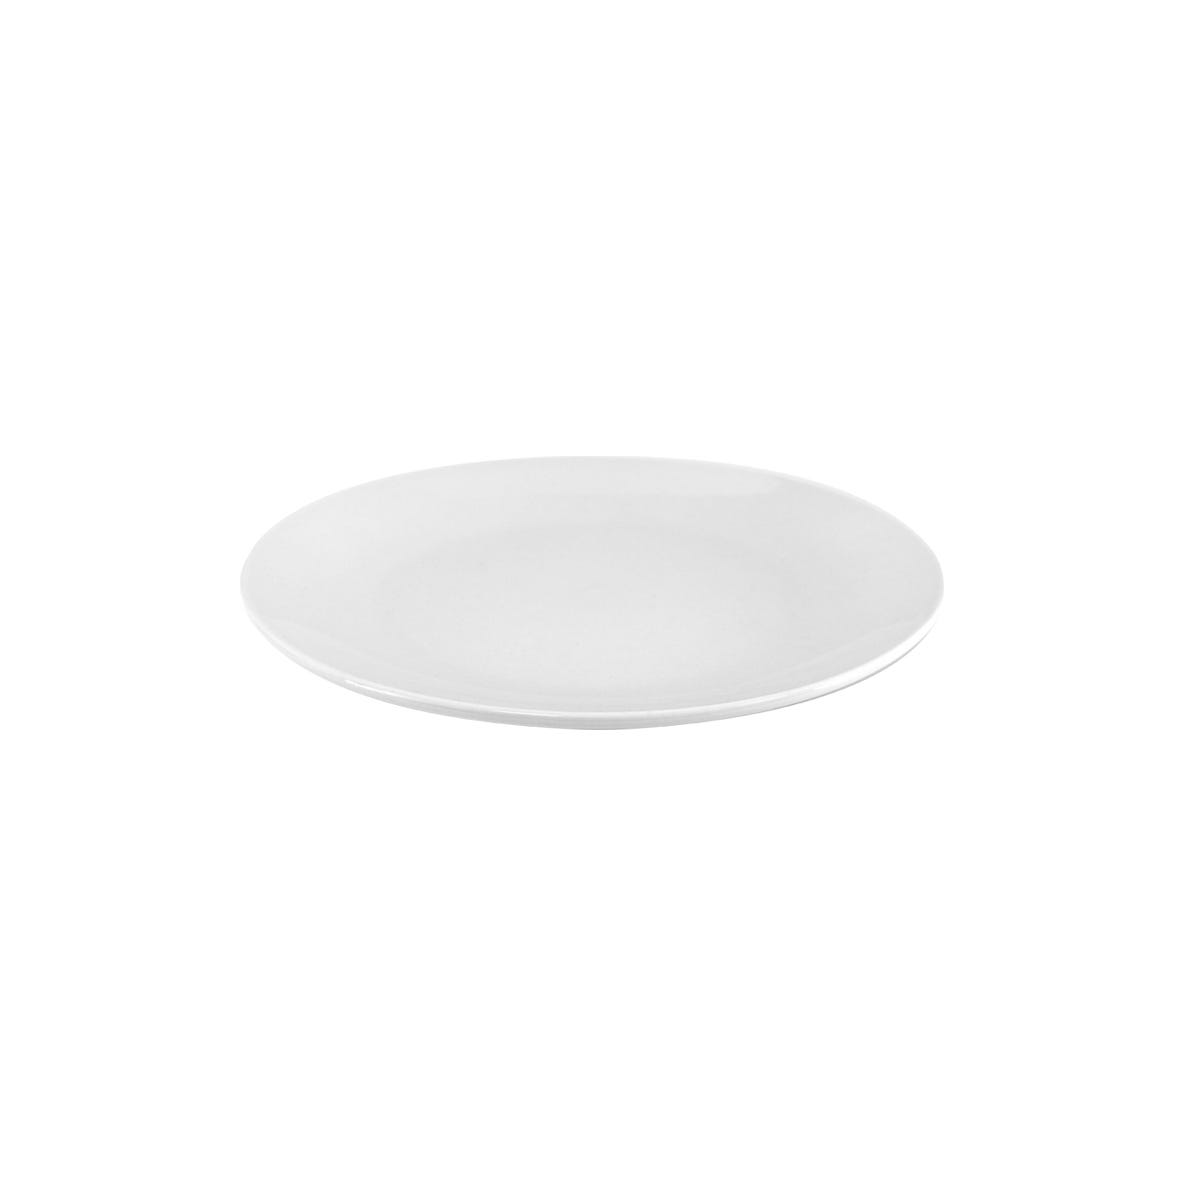 Wilko Coupe Side Plate White 19cm